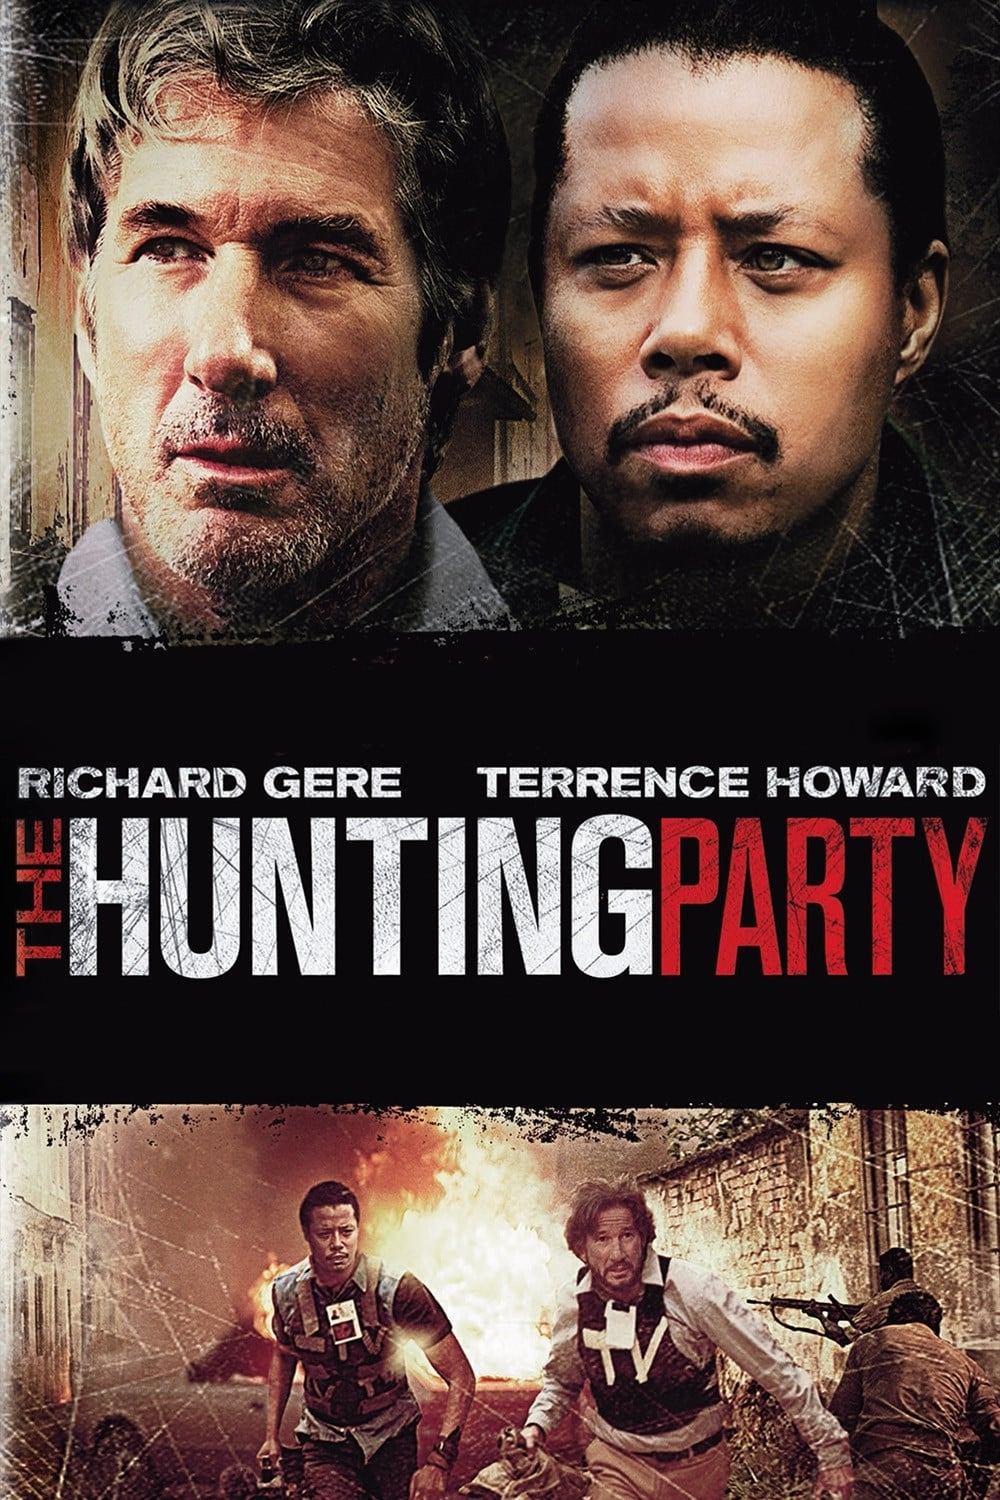 The Hunting Party (2007) Poster #1